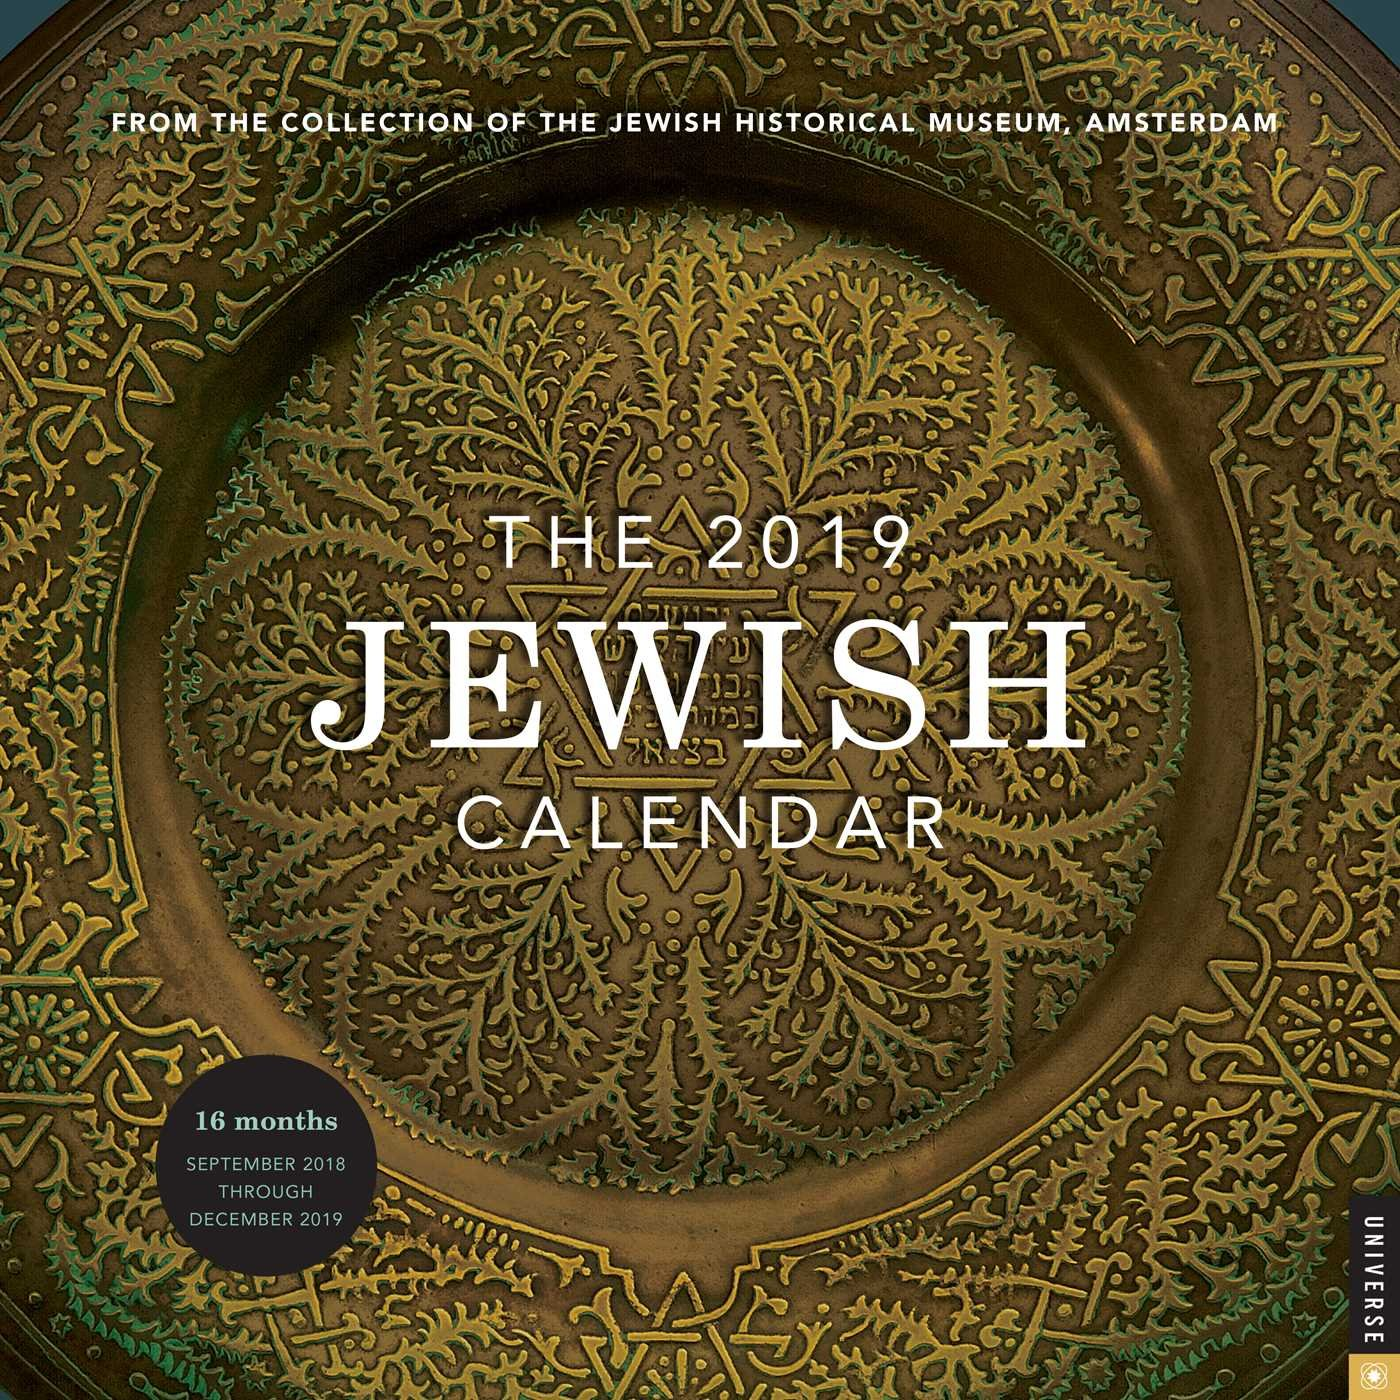 Jewish Calendar 2019.The Jewish 2018 2019 16 Month Wall Calendar Jewish Year 5779